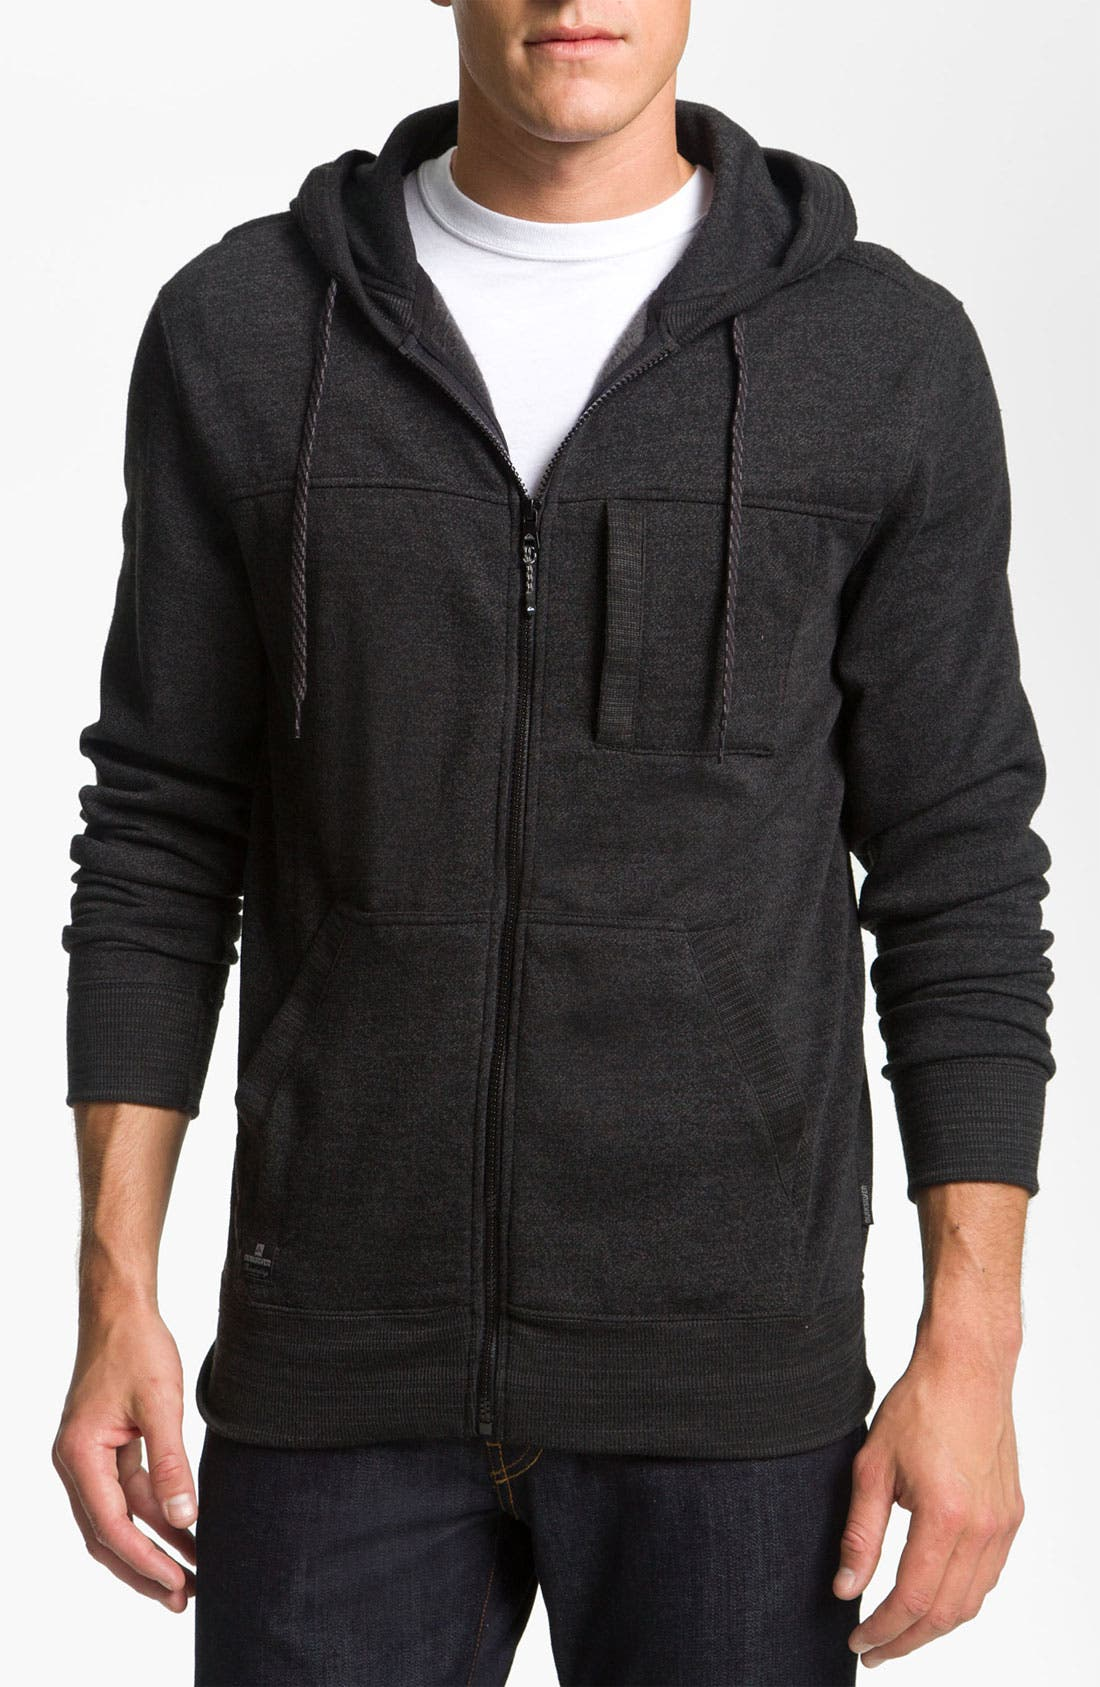 Alternate Image 1 Selected - Quiksilver 'Rambler' Zip Hoodie